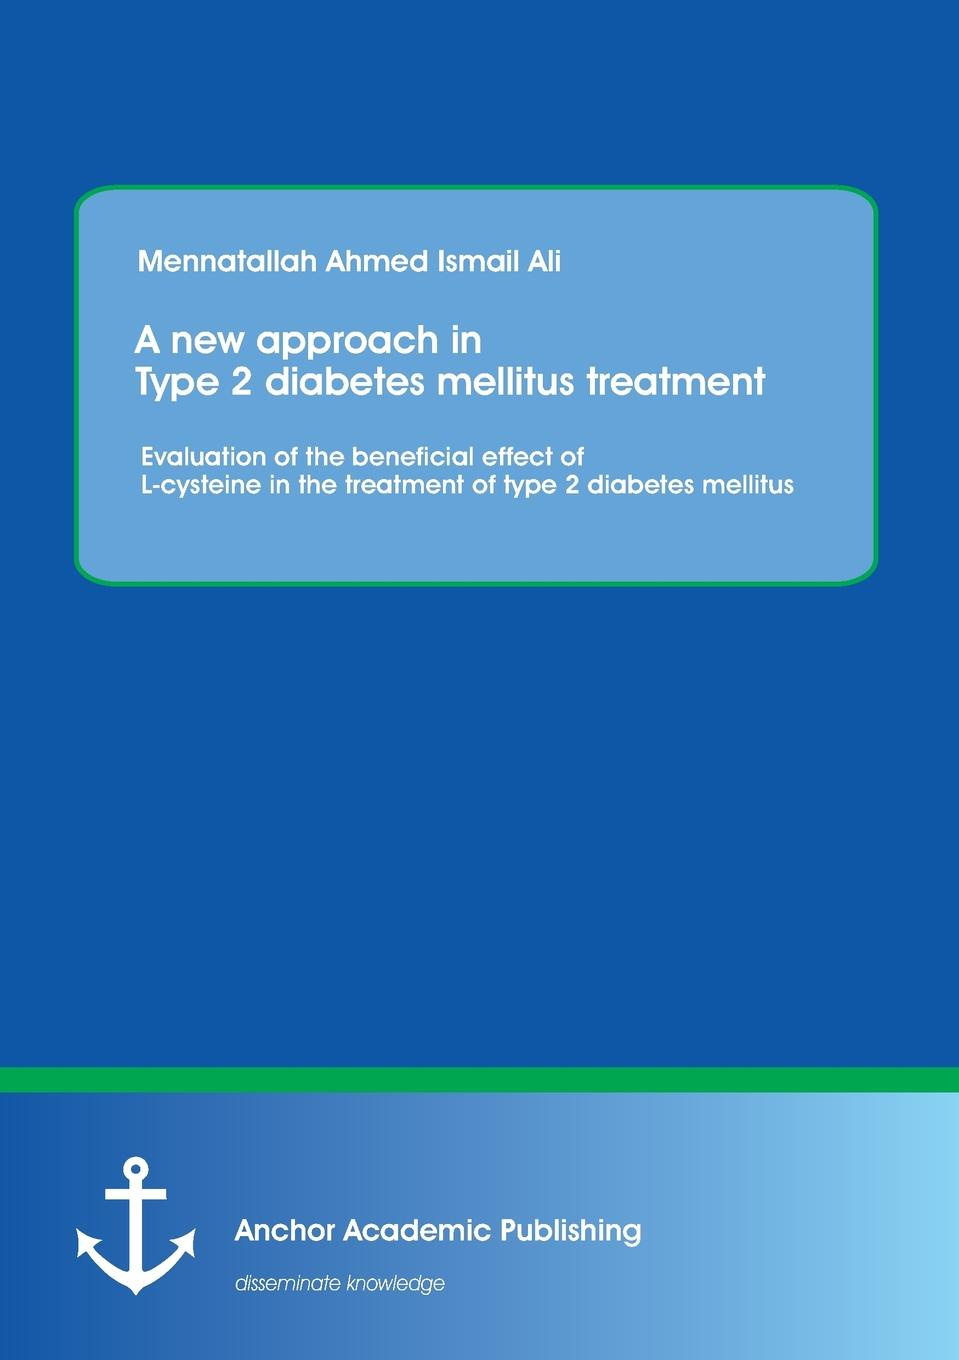 Mennatallah Ali A new approach in Type 2 diabetes mellitus treatment. Evaluation of the beneficial effect of L-cysteine in the treatment of type 2 diabetes mellitus prevalance of metabolic syndrome in baghdad